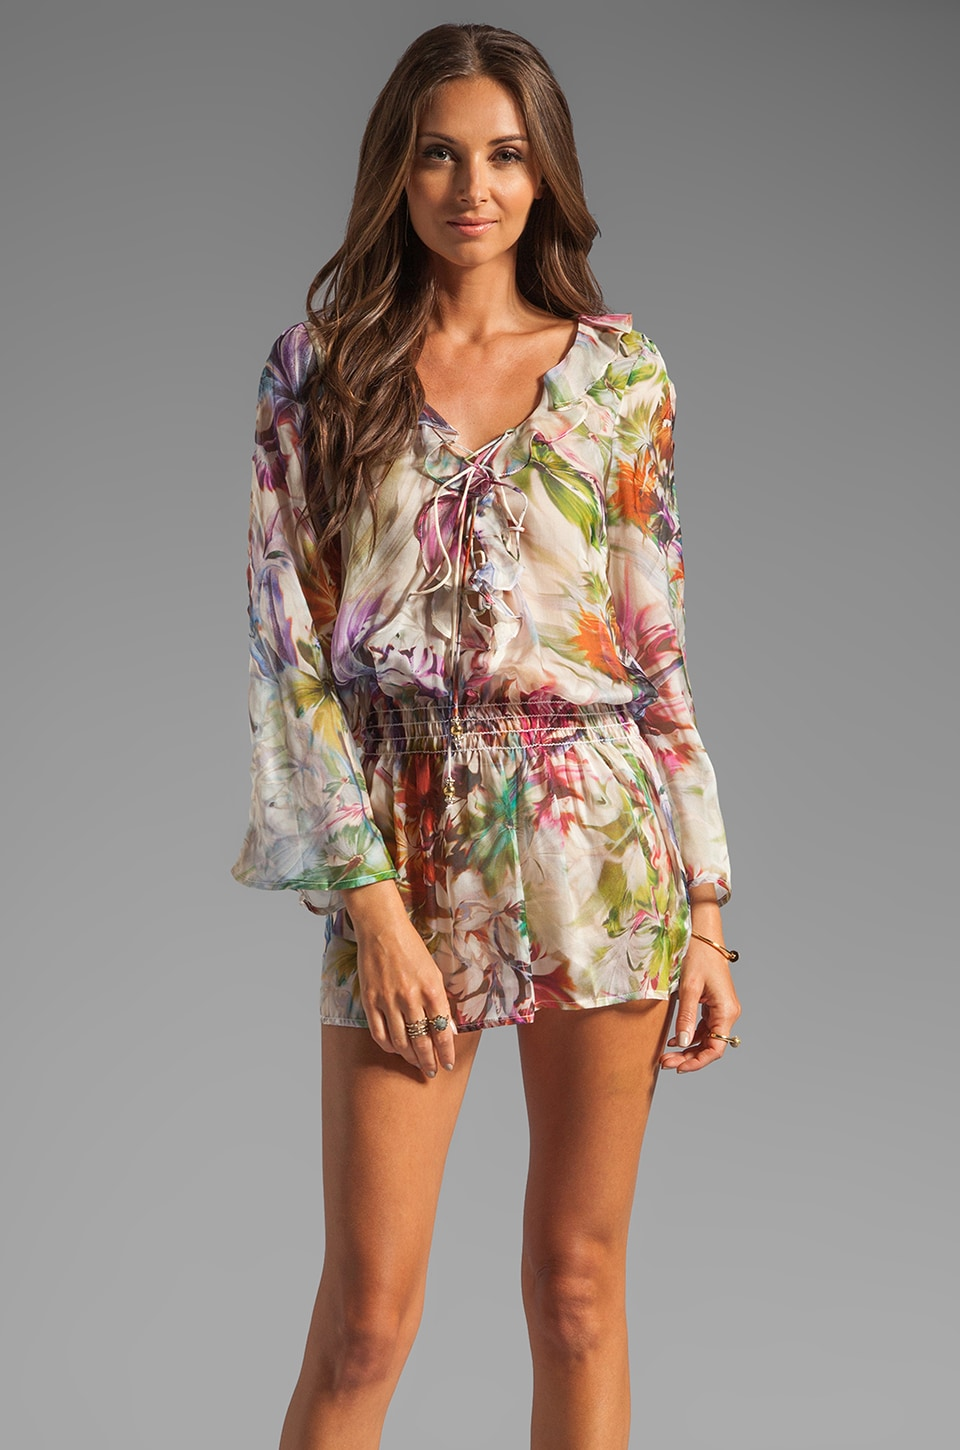 Beach Bunny Garden Party Tunic in Tropical